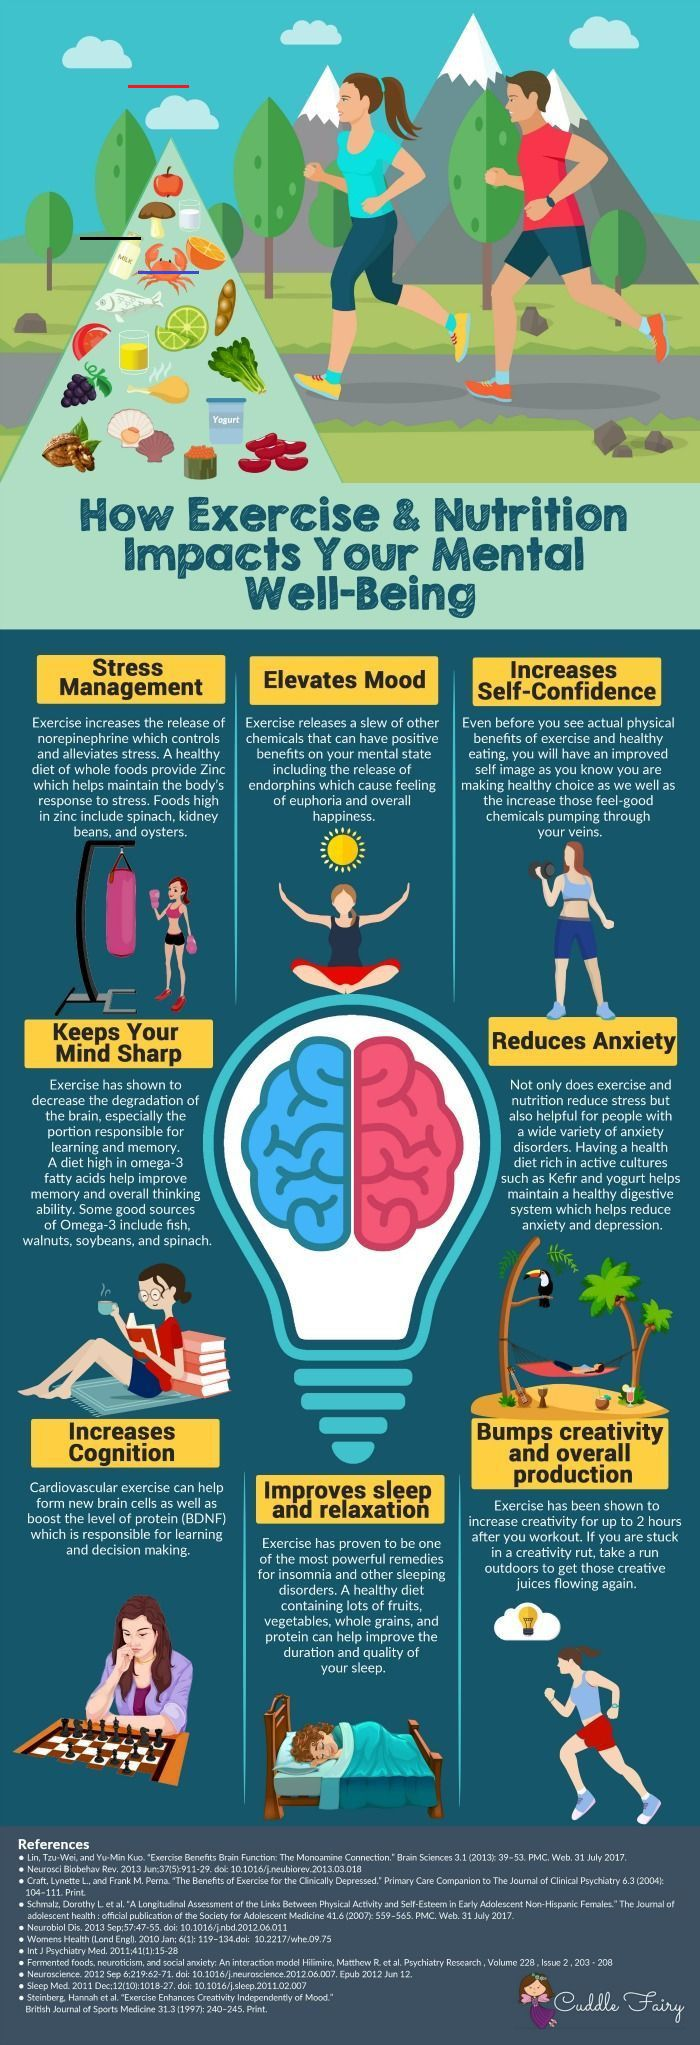 How Exercise & Nutrition Positively Impacts Your Mental Well-Being • Cuddle Fairy How Exercise & Nut...